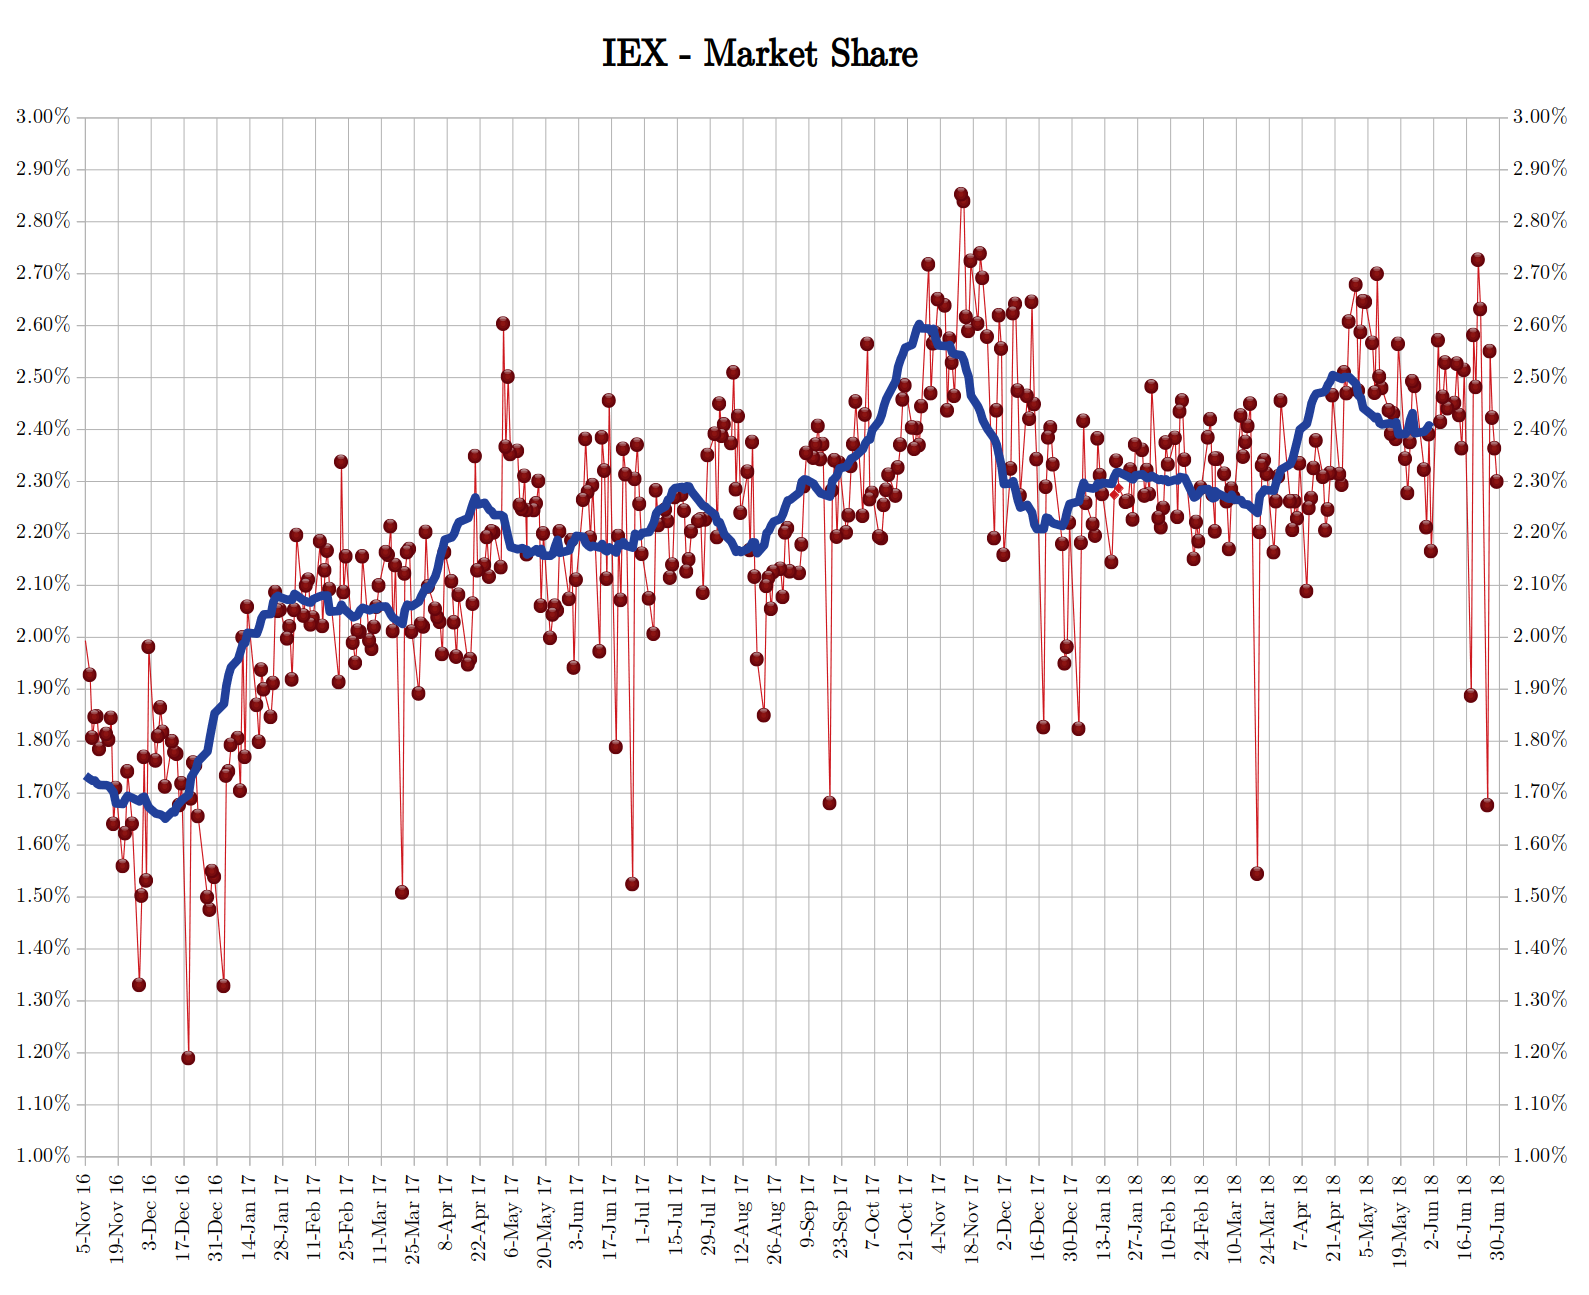 IEX - market share - or lack thereof